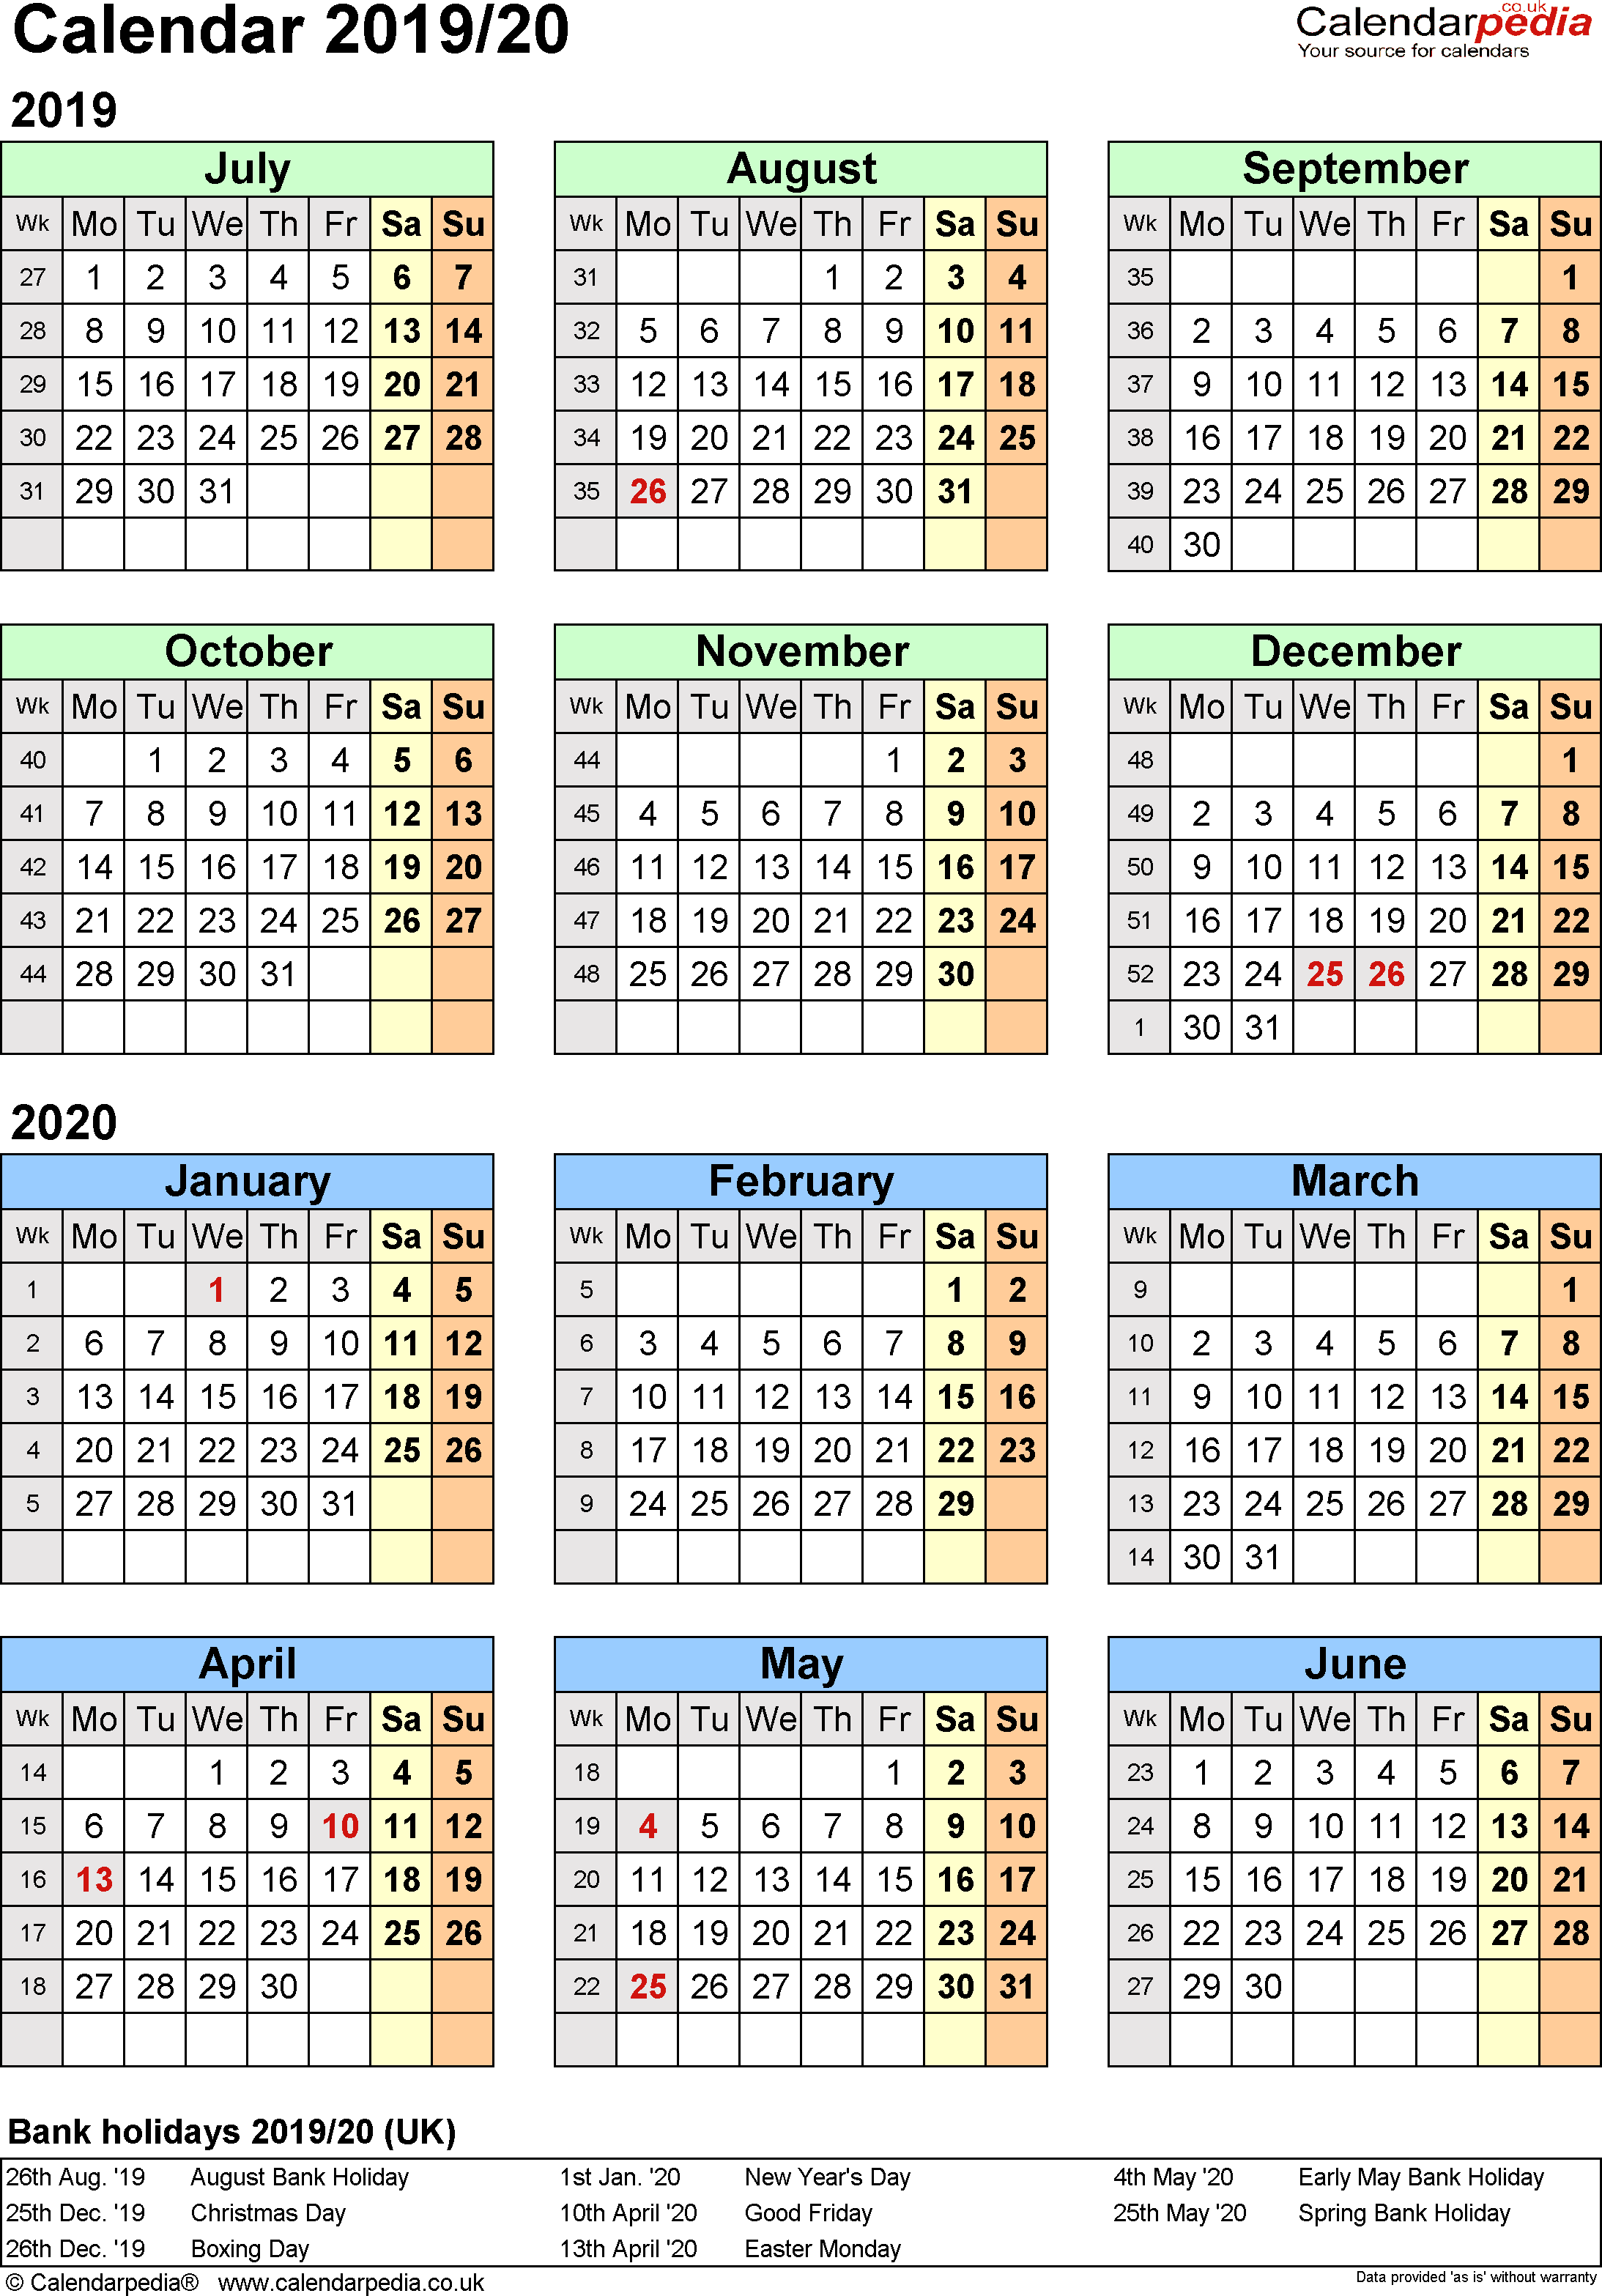 template 2 split year calendar 201920 for pdf year at a glance portrait